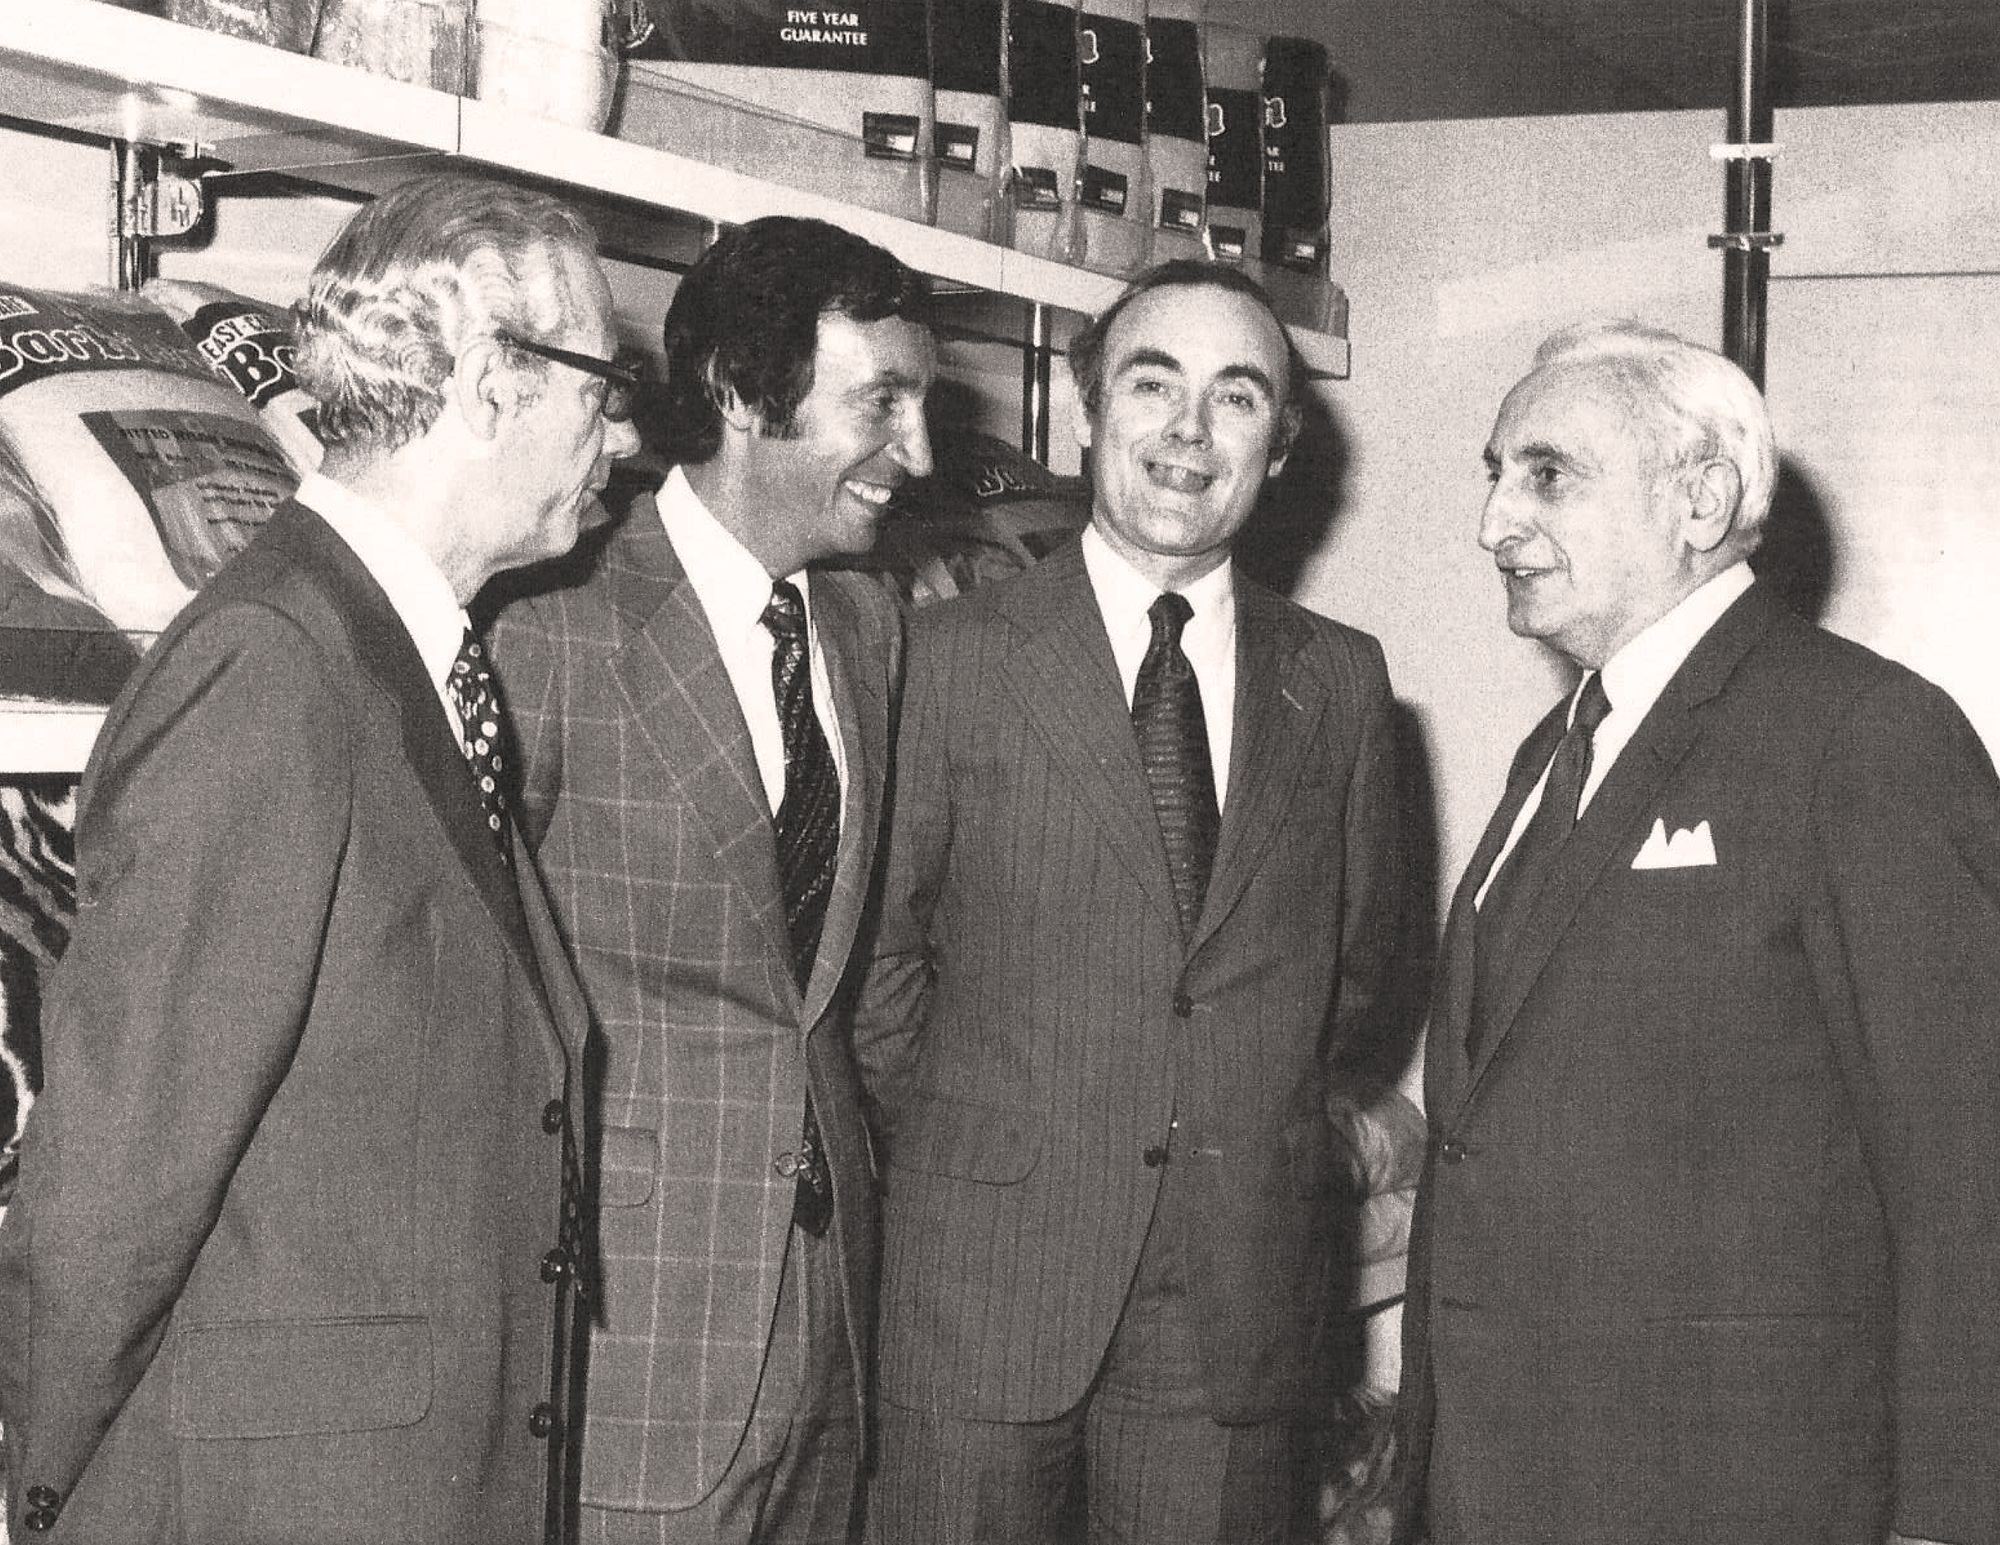 Far Right Maurice Phillips (Founder); Middle Right, Selfridges Buyer; Middle Left, Malcolm Phillips (2nd Generation); Far Left, Phillip Dew (An employee of the Original Maurice Phillips Company) Photo Taken 1982.